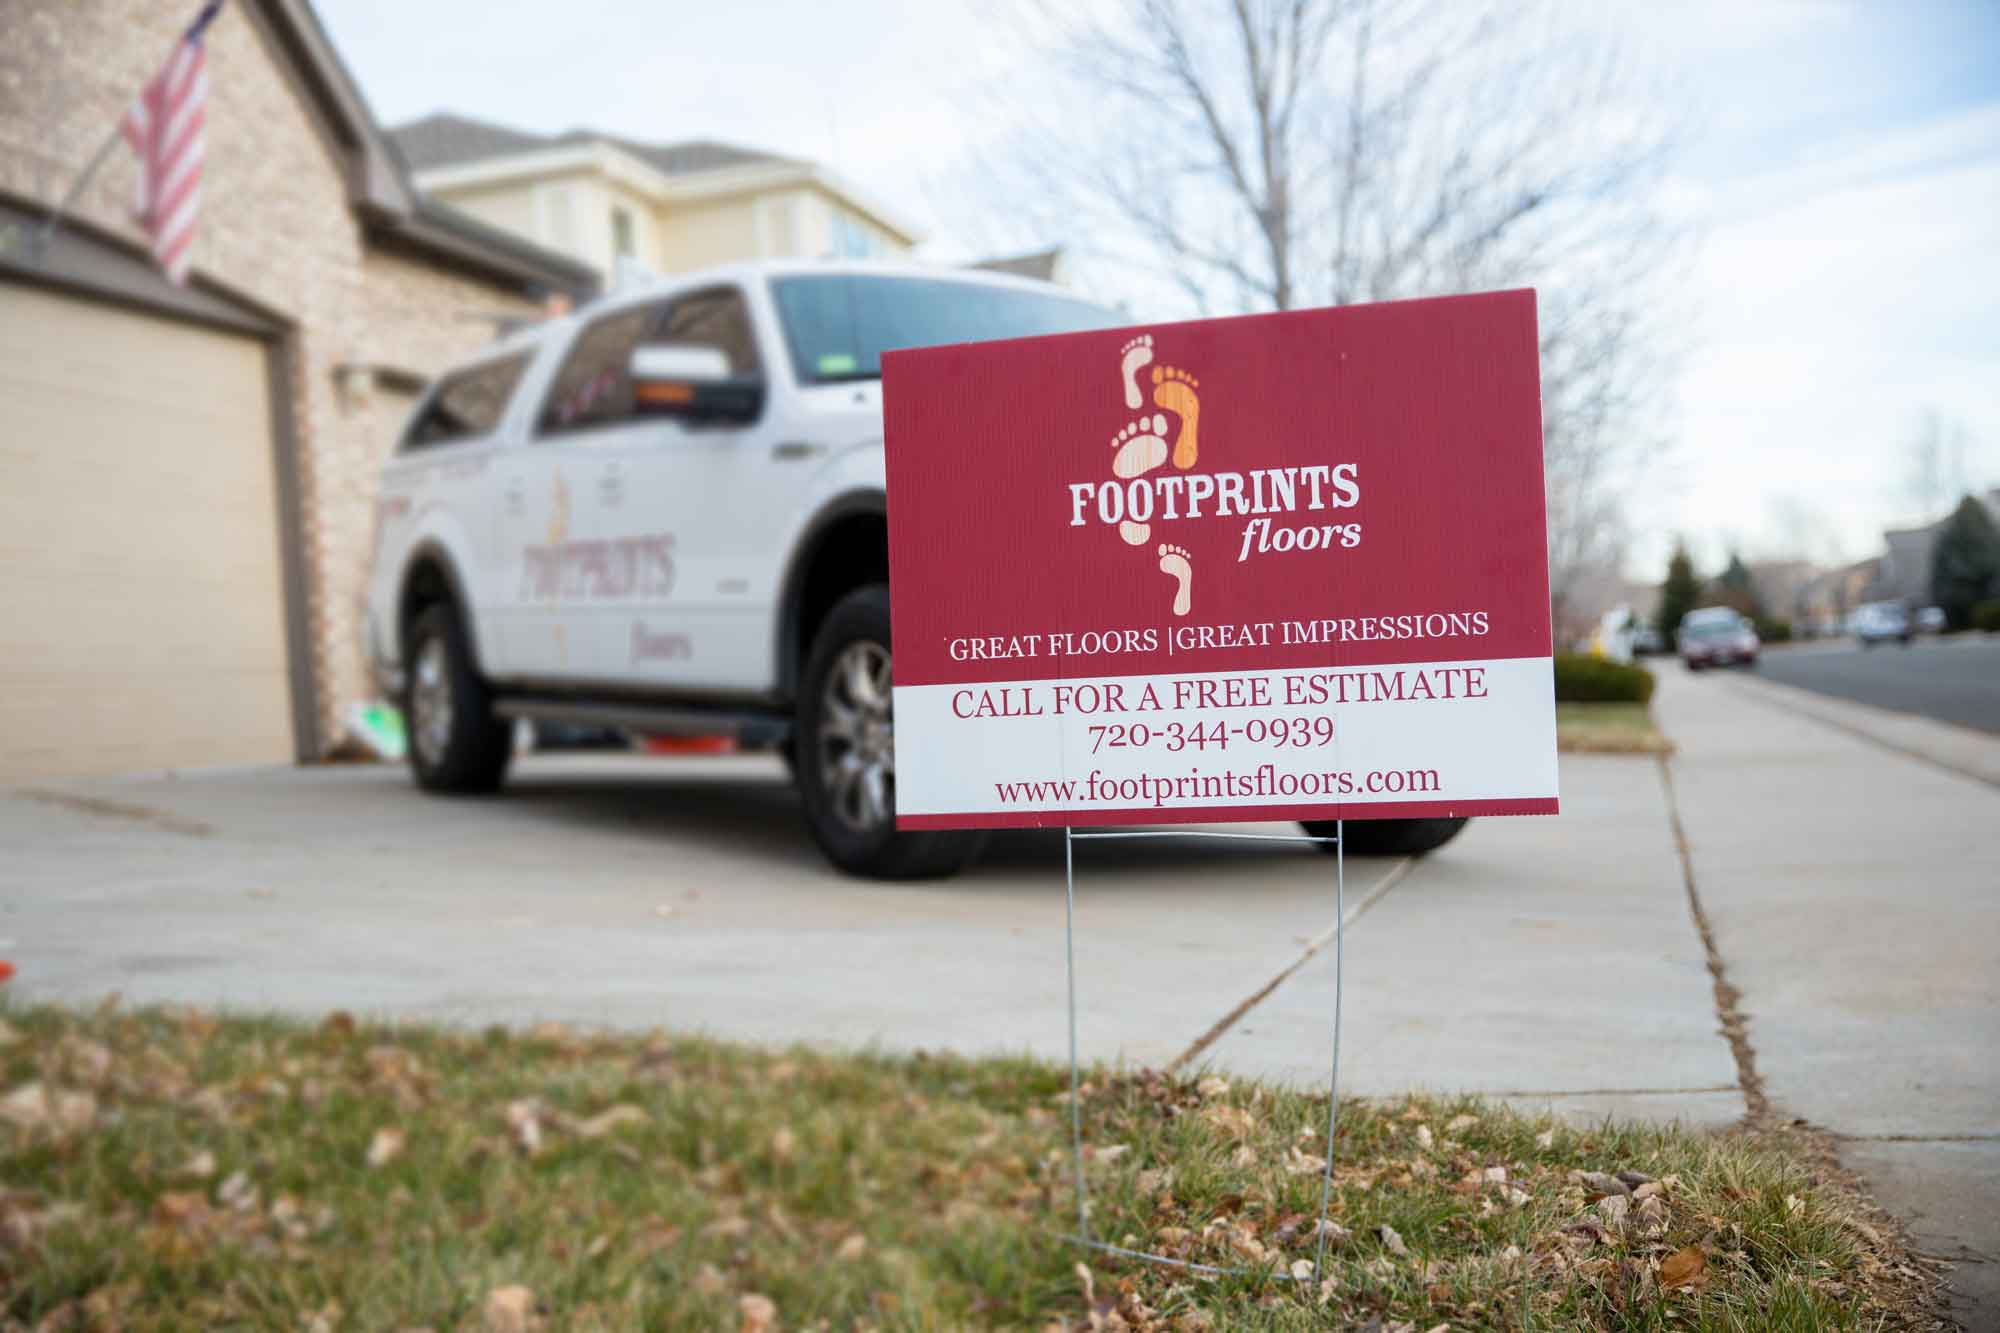 Footprints Floors home improvement franchise sign in front of truck